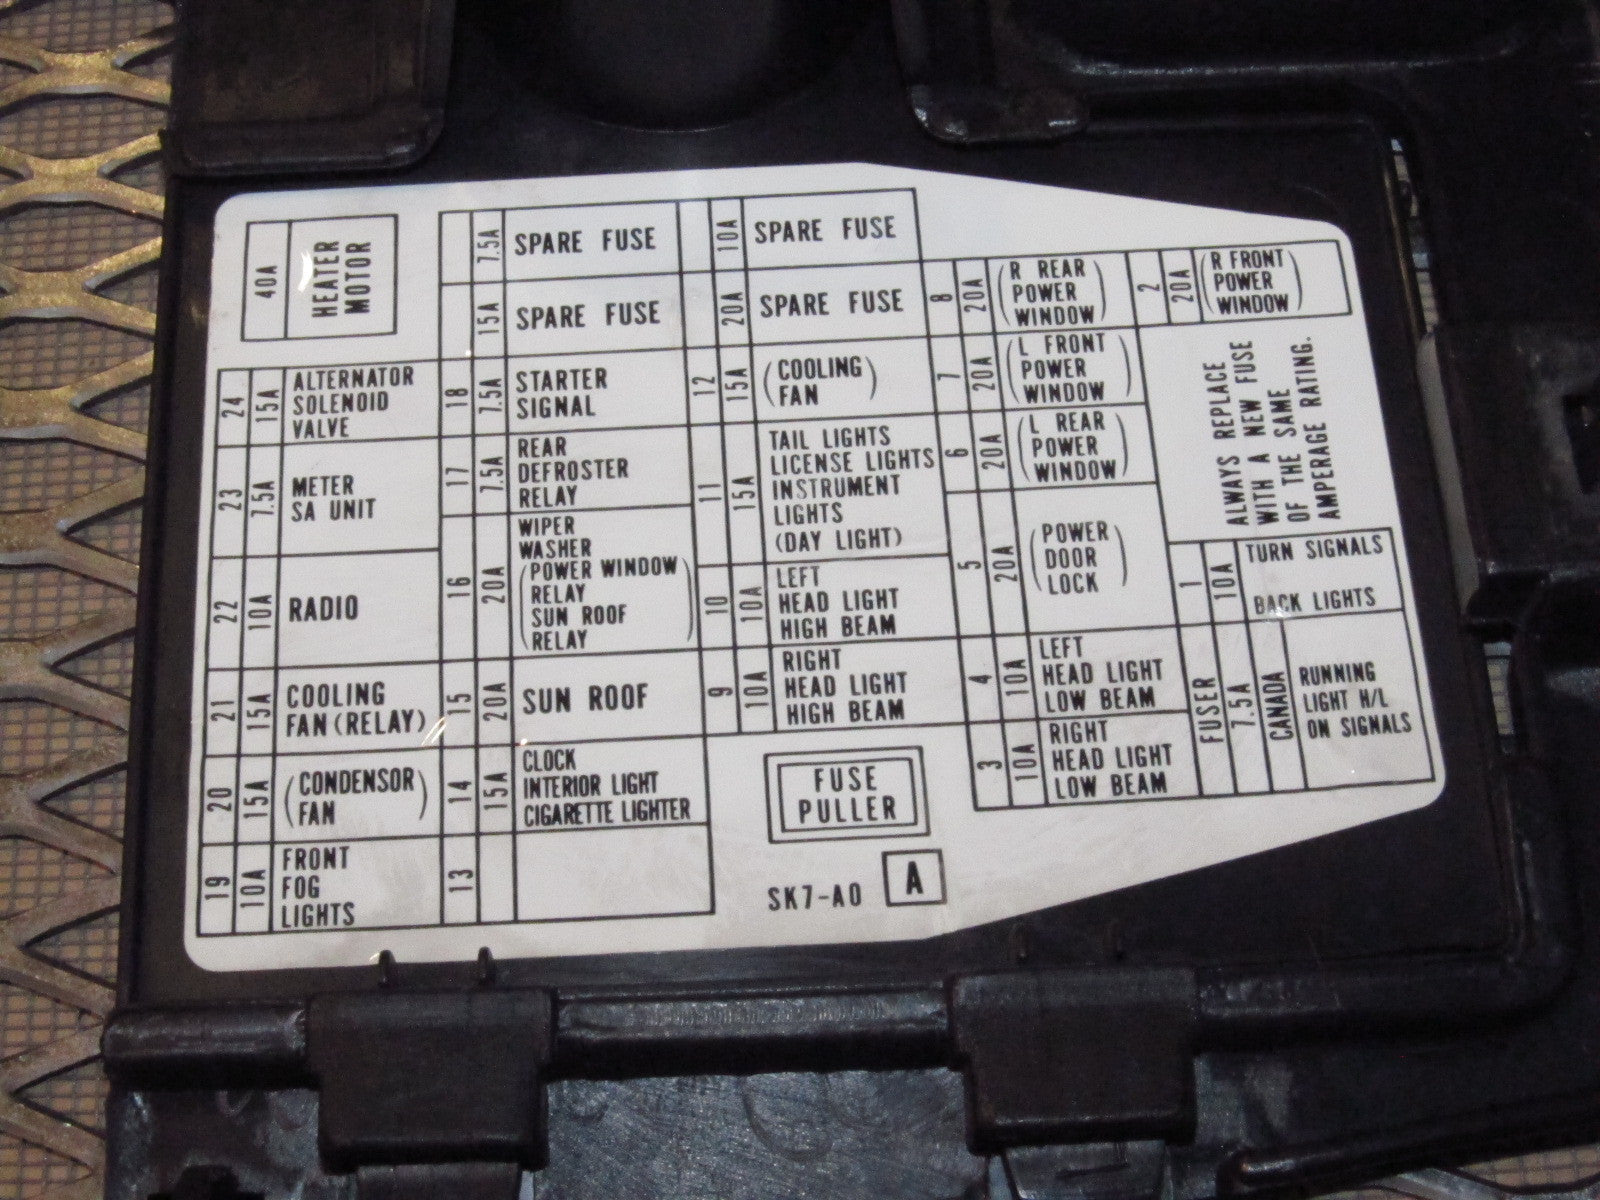 95 Integra Fuse Box | Wiring Diagram